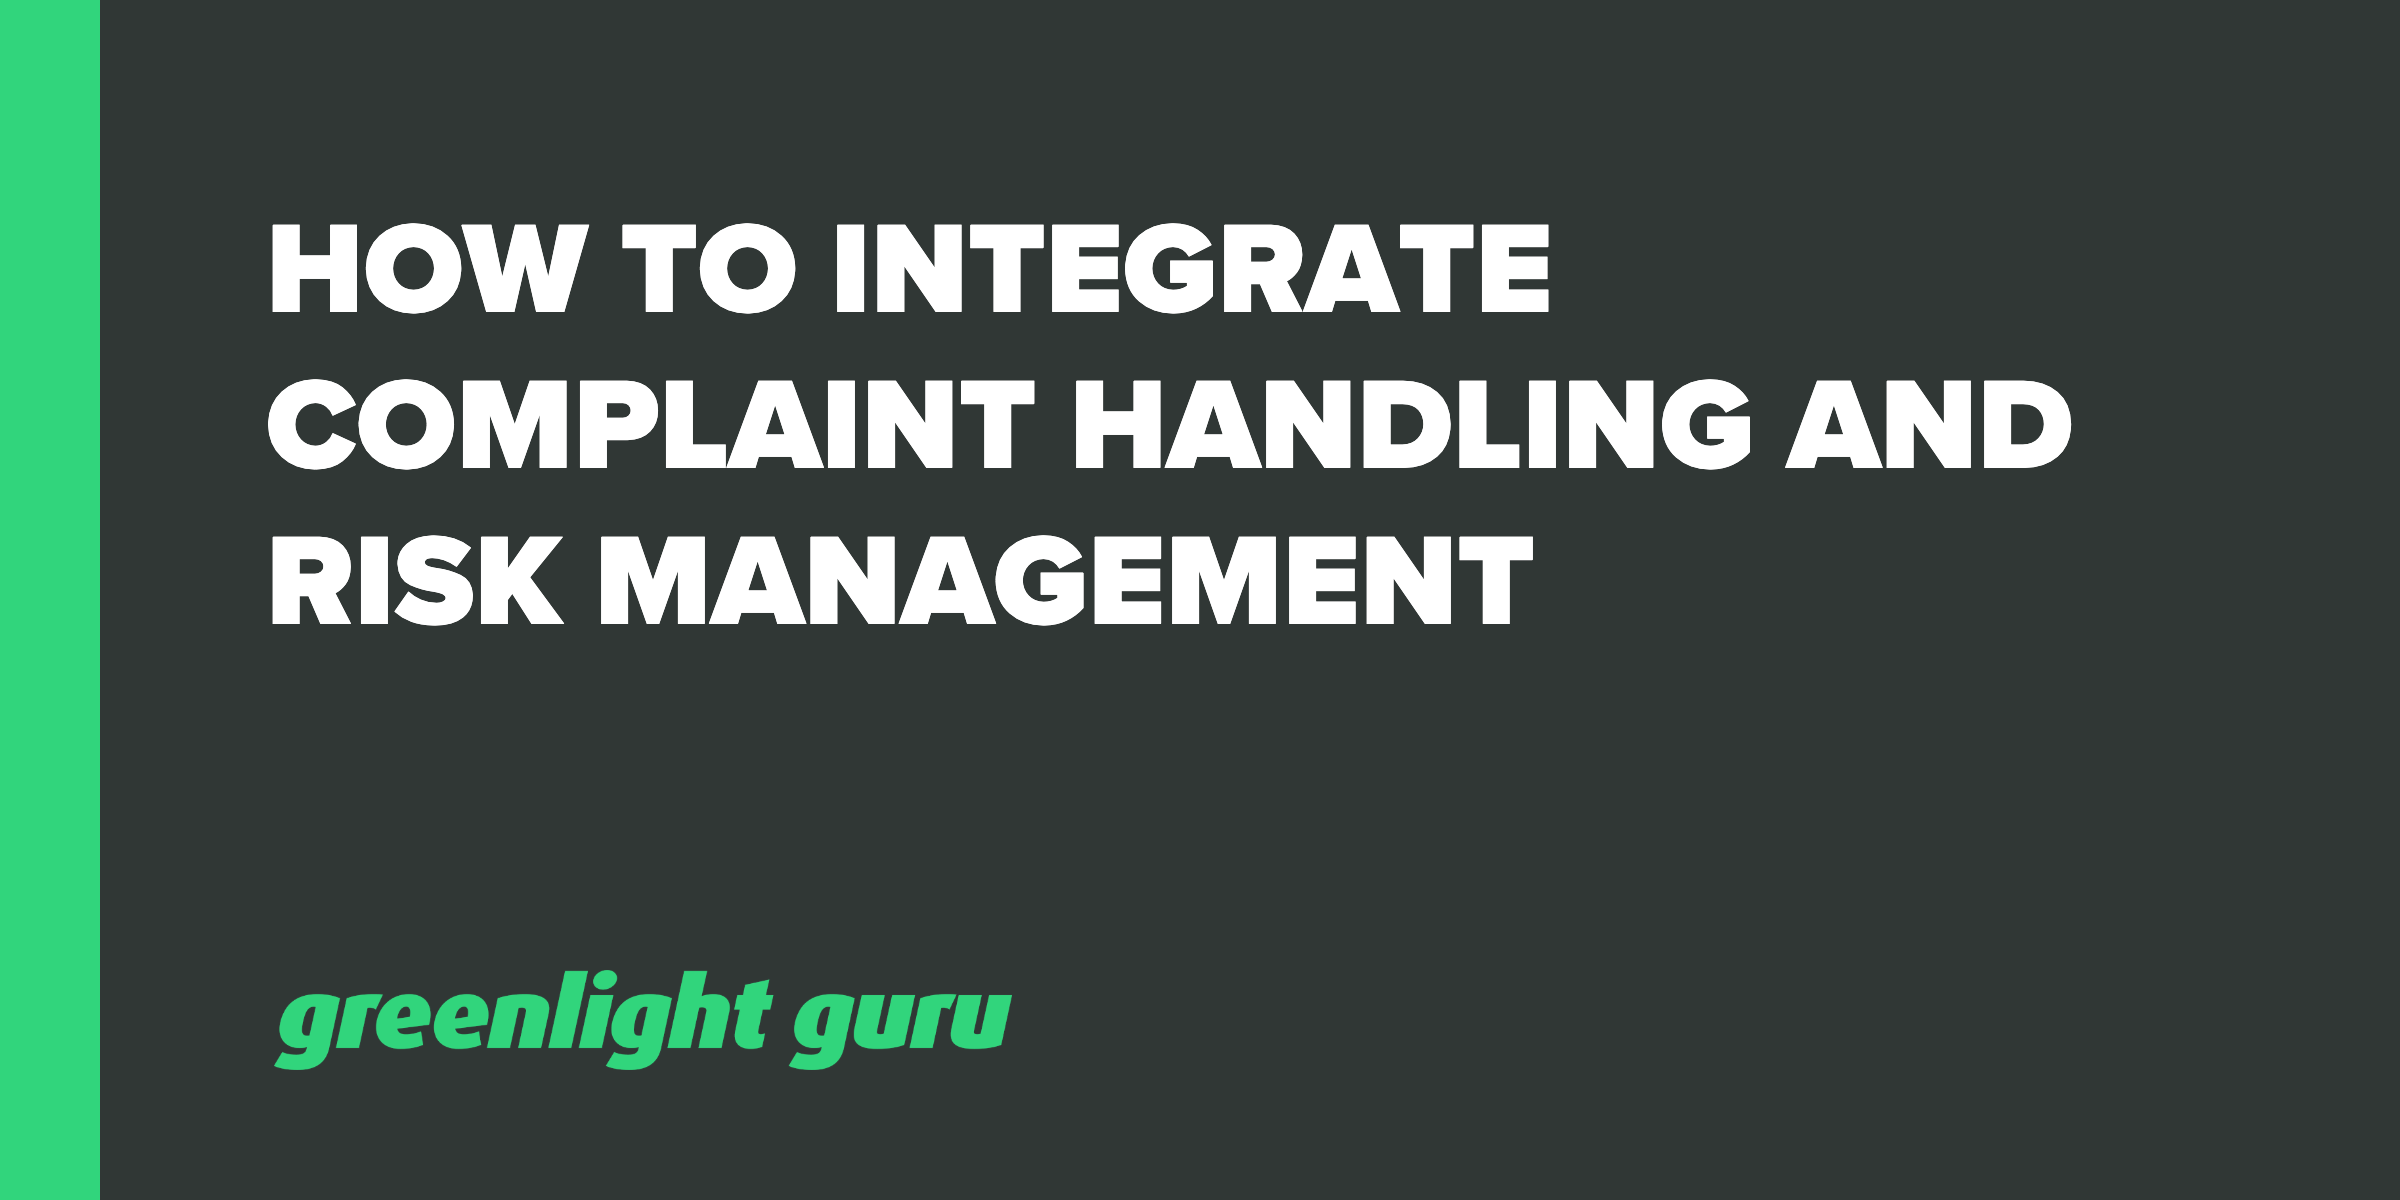 How To Integrate Complaint Handling And Risk Management